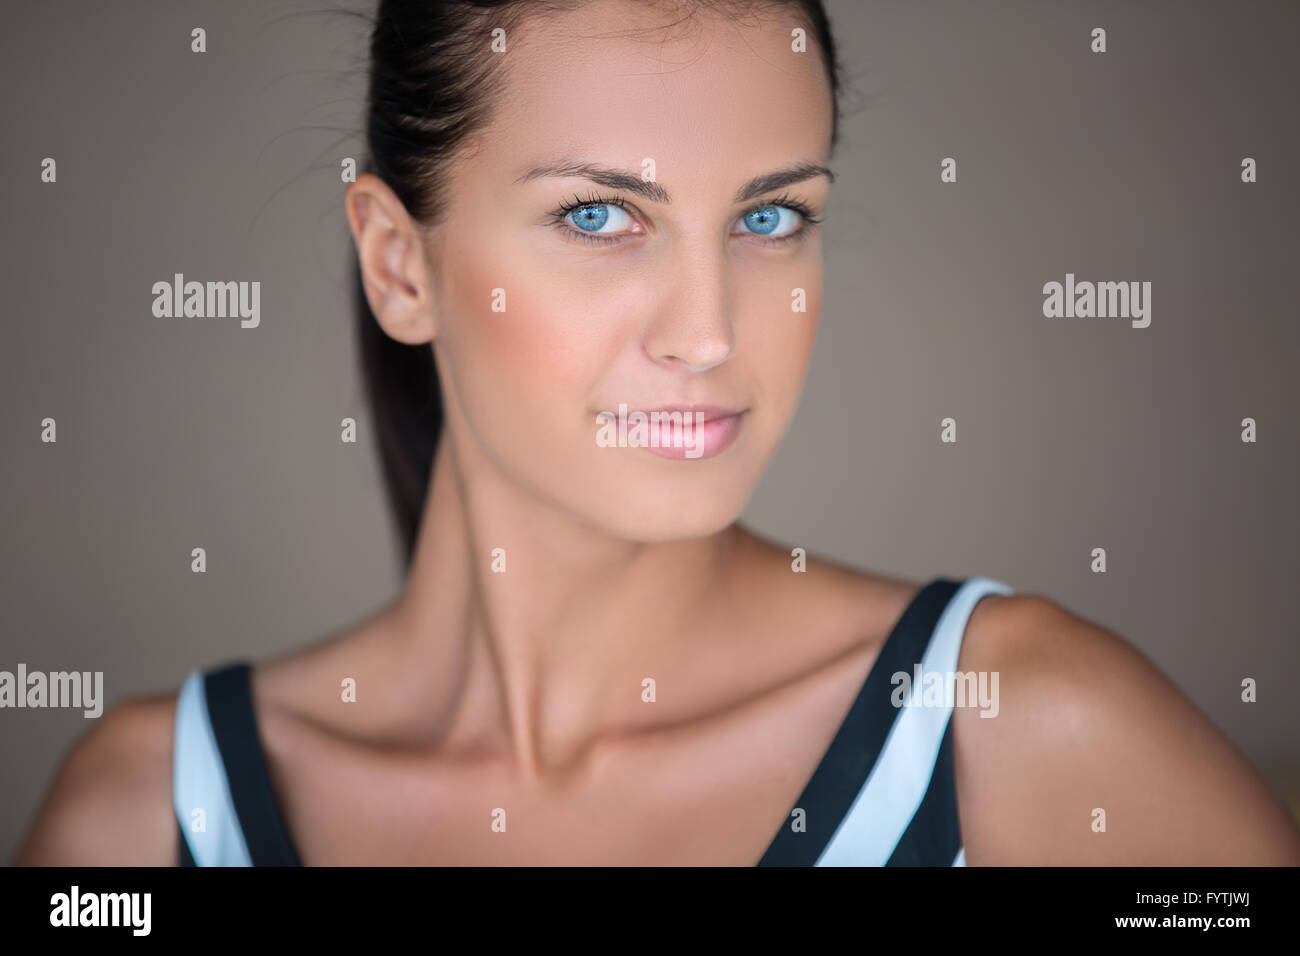 Blue-eyed girl with dark hair - Stock Image